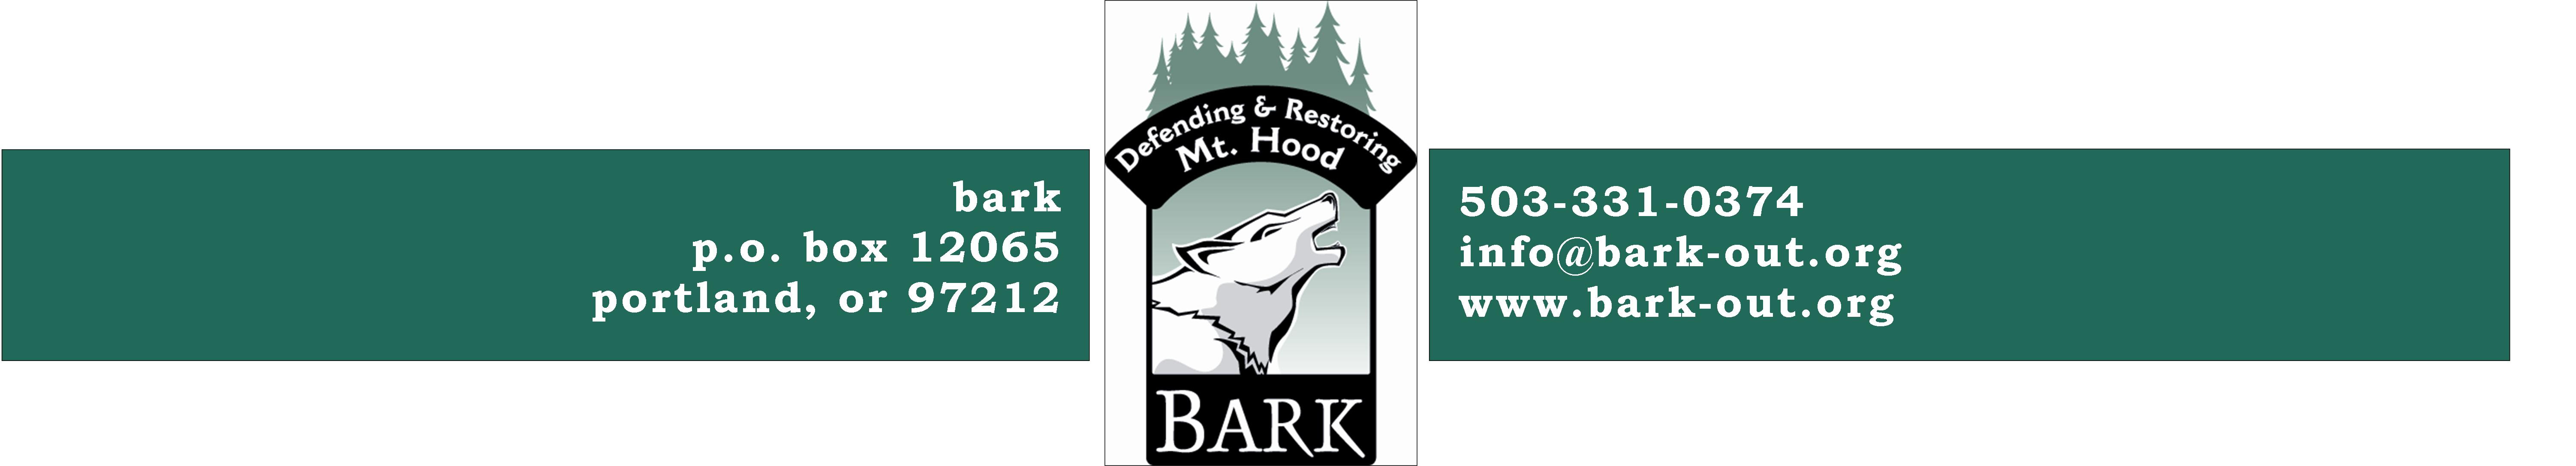 Bark: Defenders of Mt. Hood